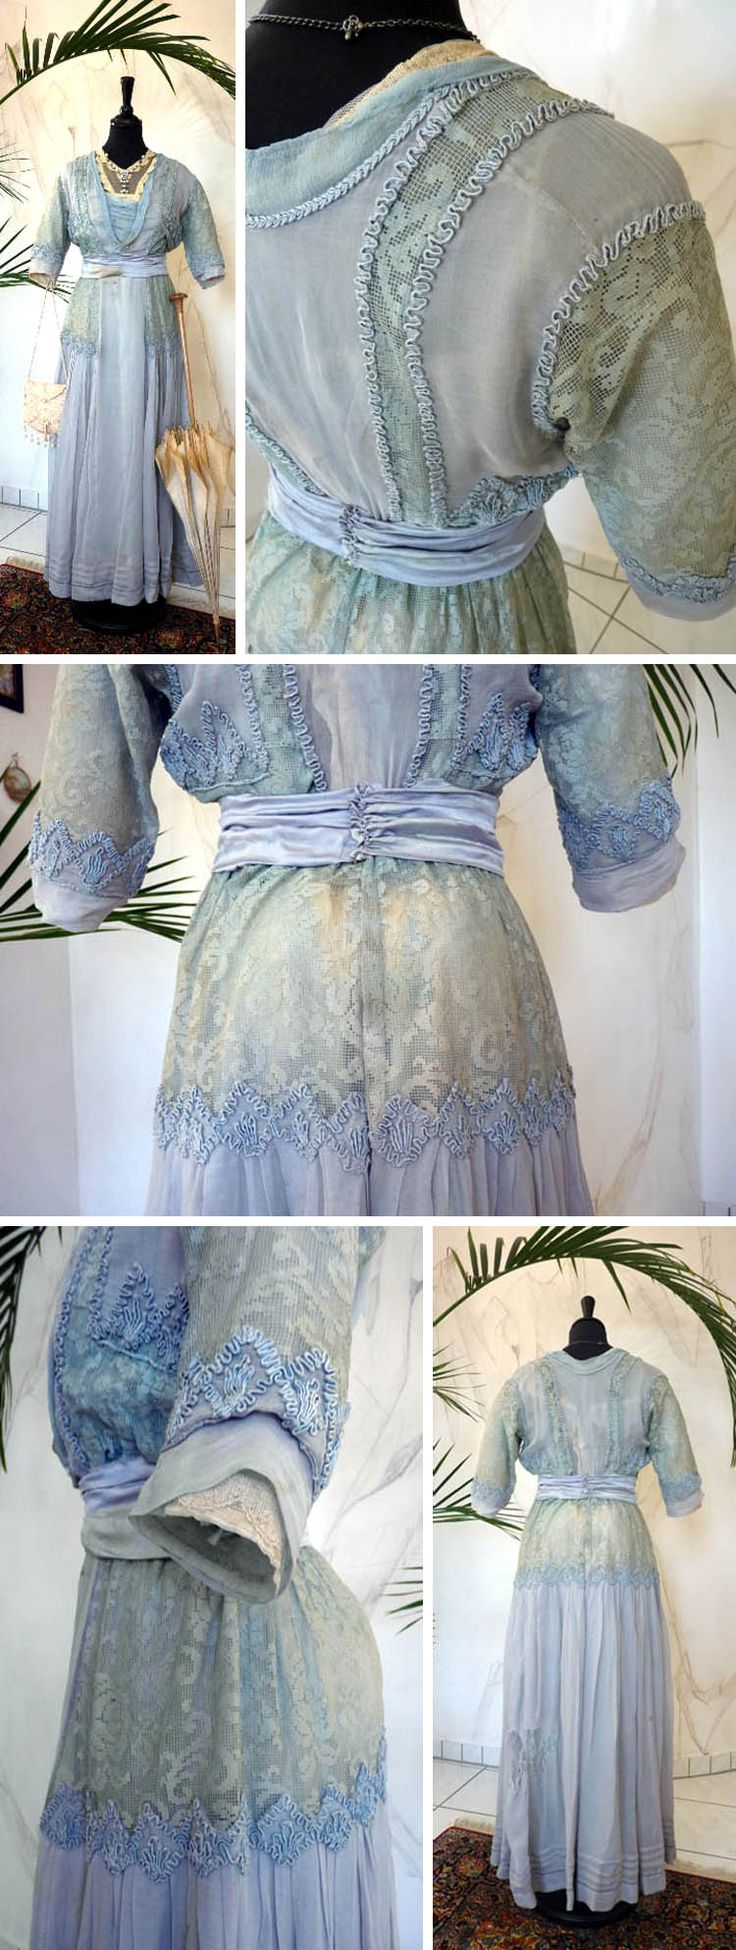 Afternoon dress, GE Spitzer, Vienna, ca. 1900-1914. Light blue, one piece, silk, lace, chiffon, tulle, and net with appliqués. Cream silk and blue chiffon underskirt. Closes in back with snaps and hooks. Antique-Gown